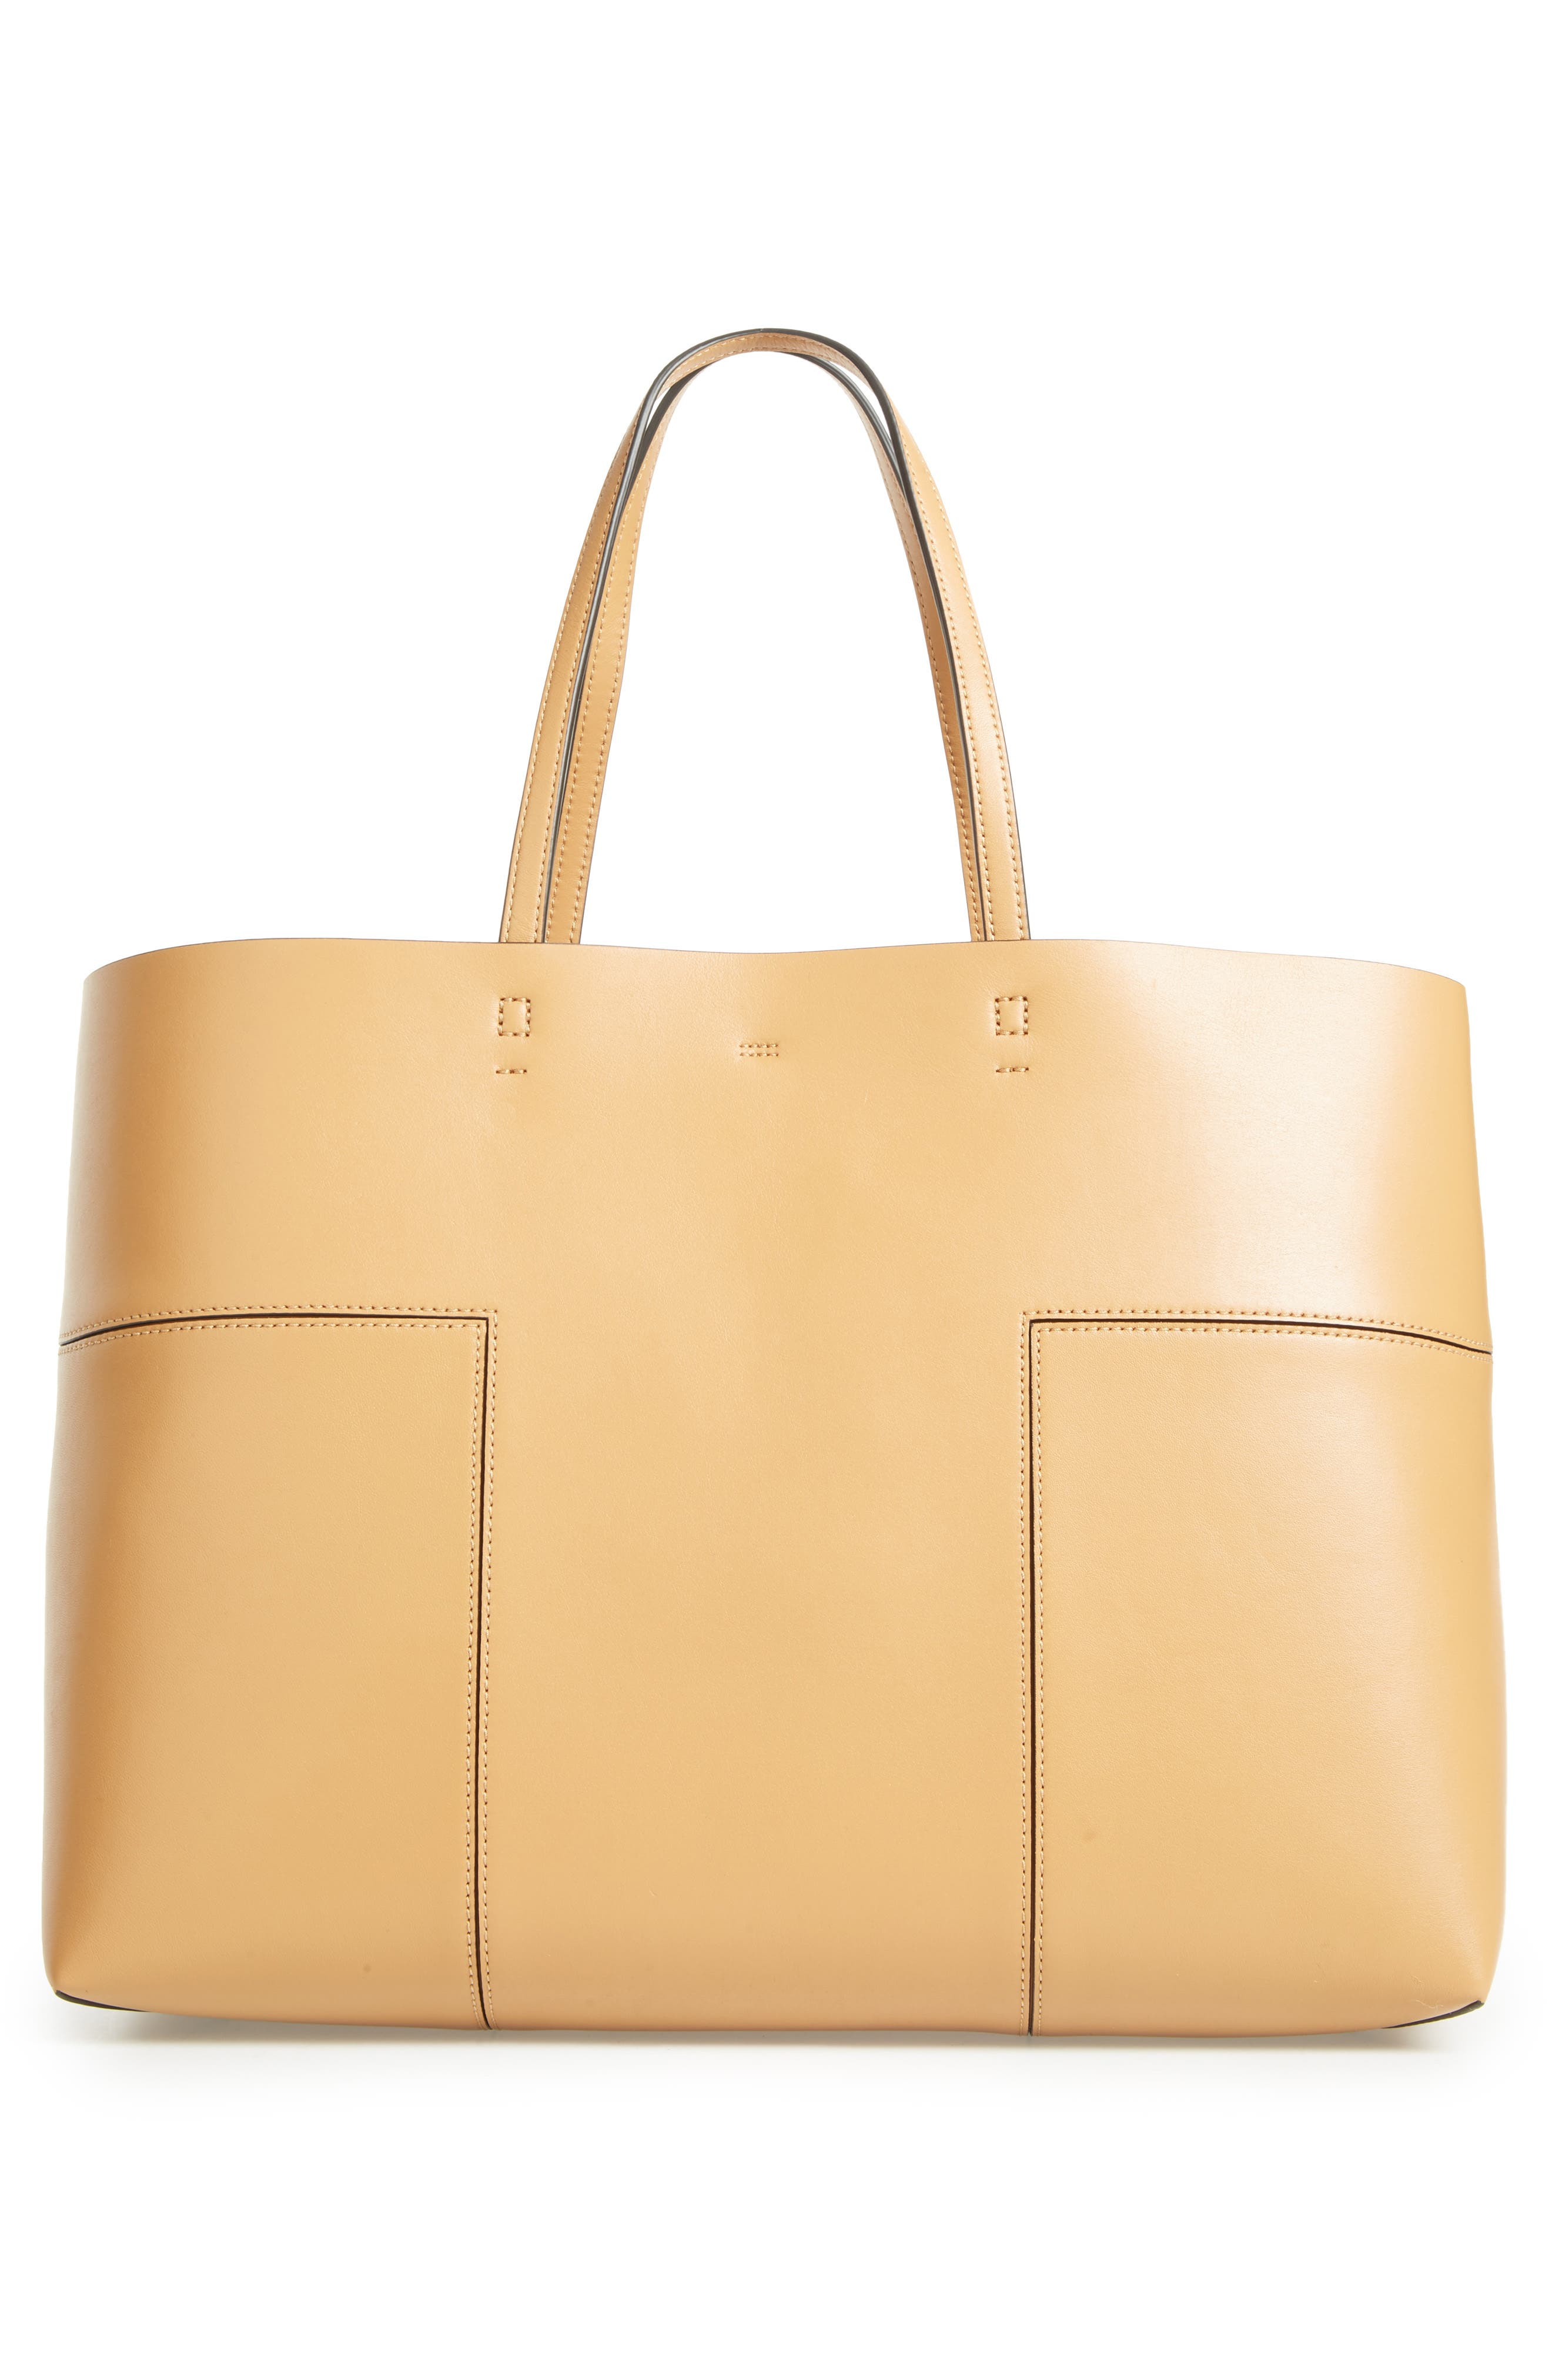 Alternate Image 3  - Tory Burch 'Block-T' Leather Tote